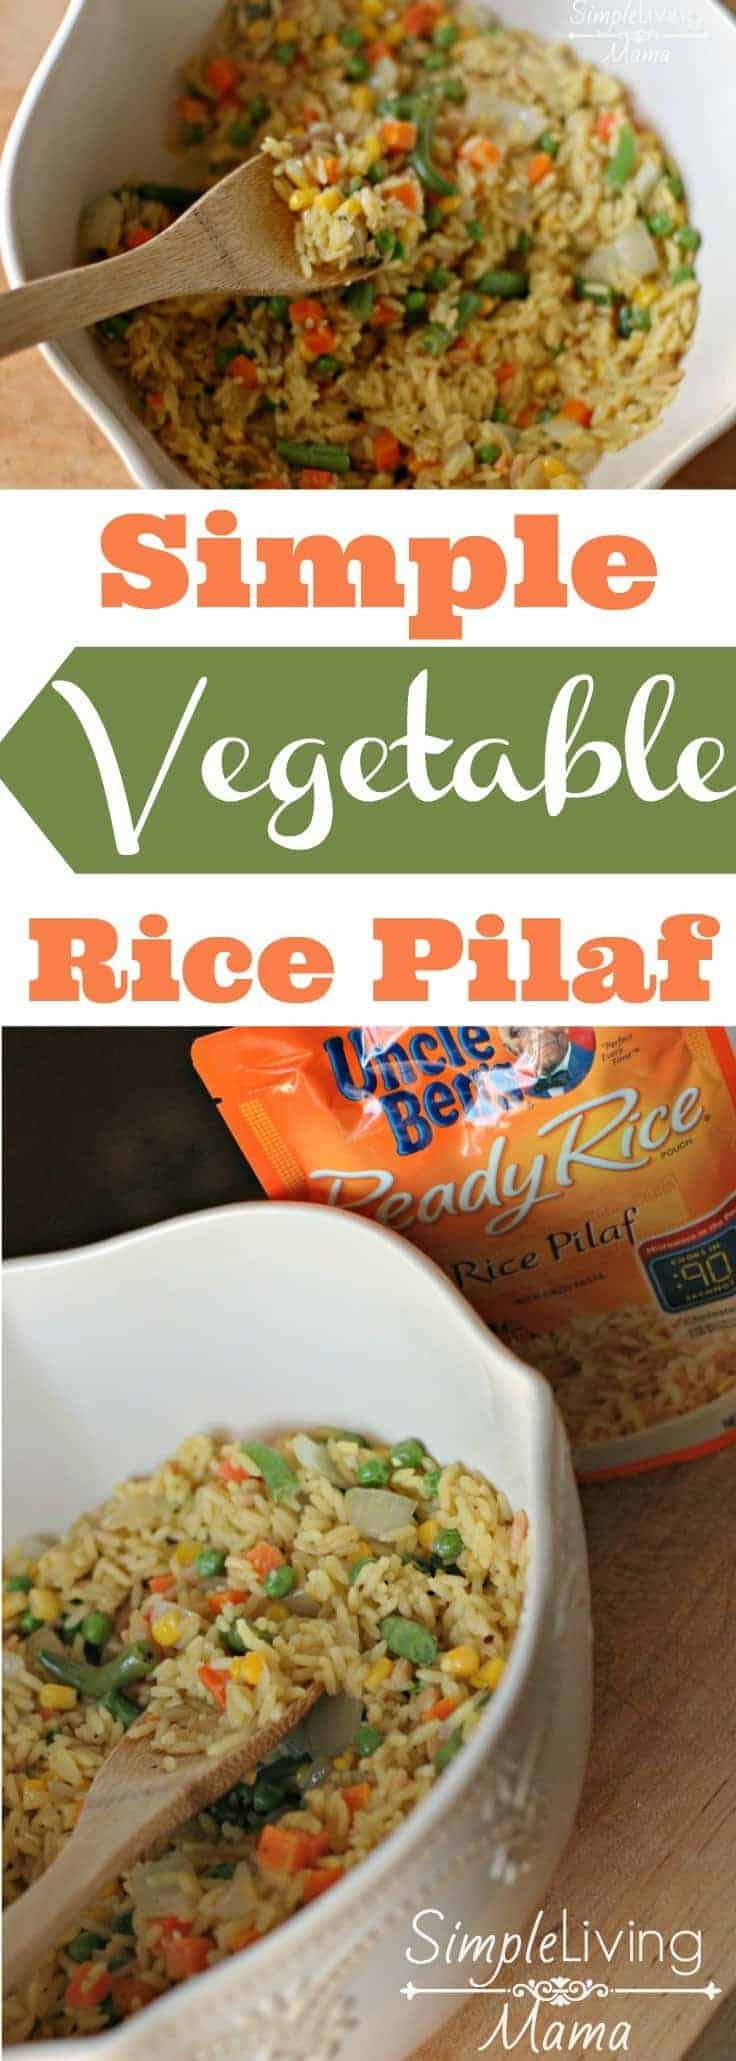 simple vegetable rice pilaf recipe that even your children can help ...